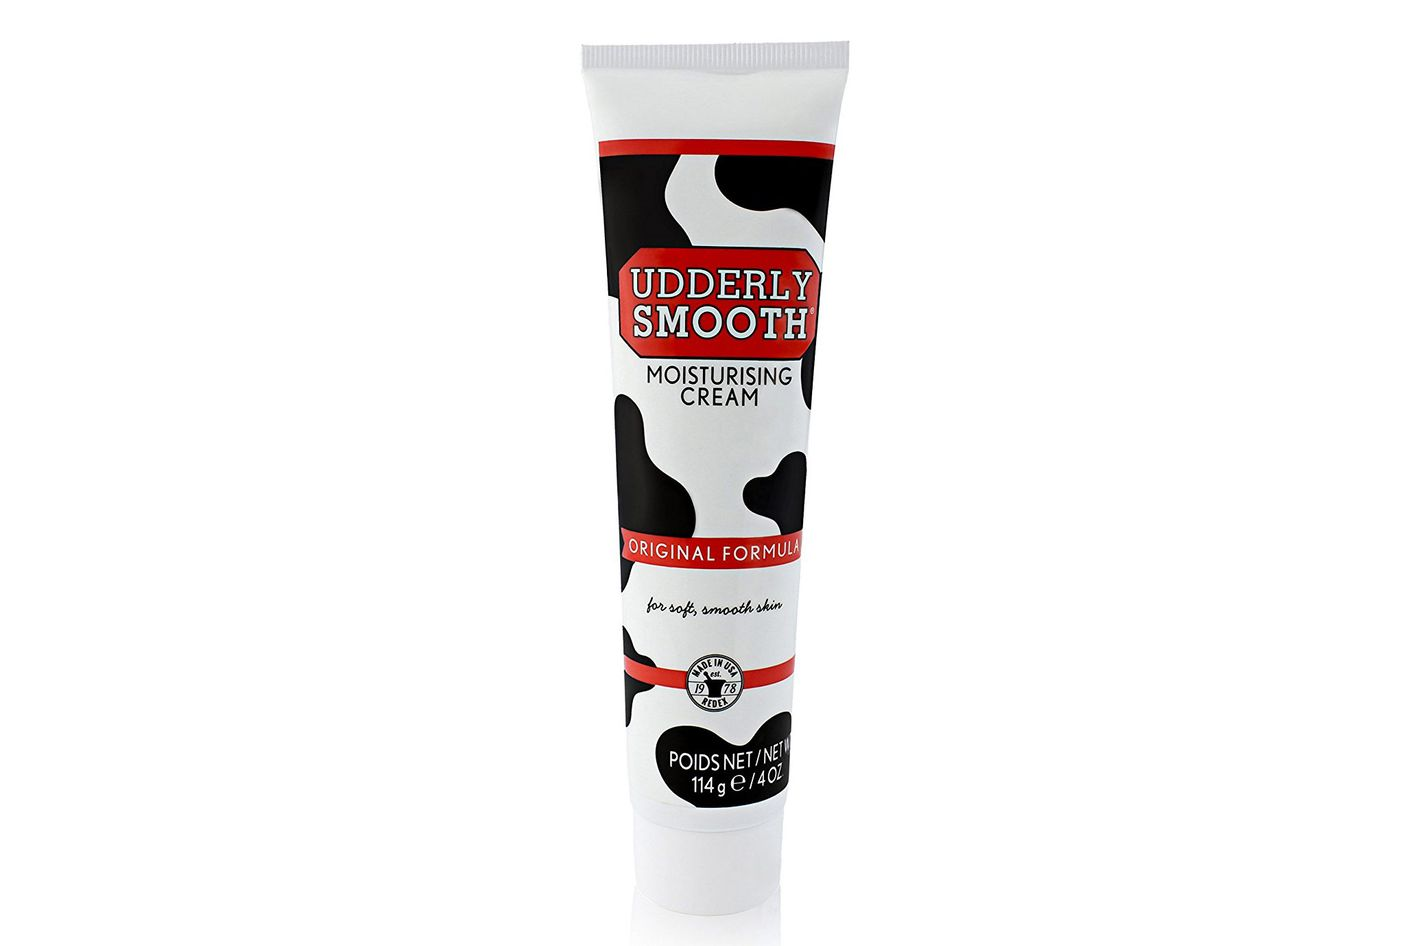 Udderly Smooth Udder Cream Moisturizer